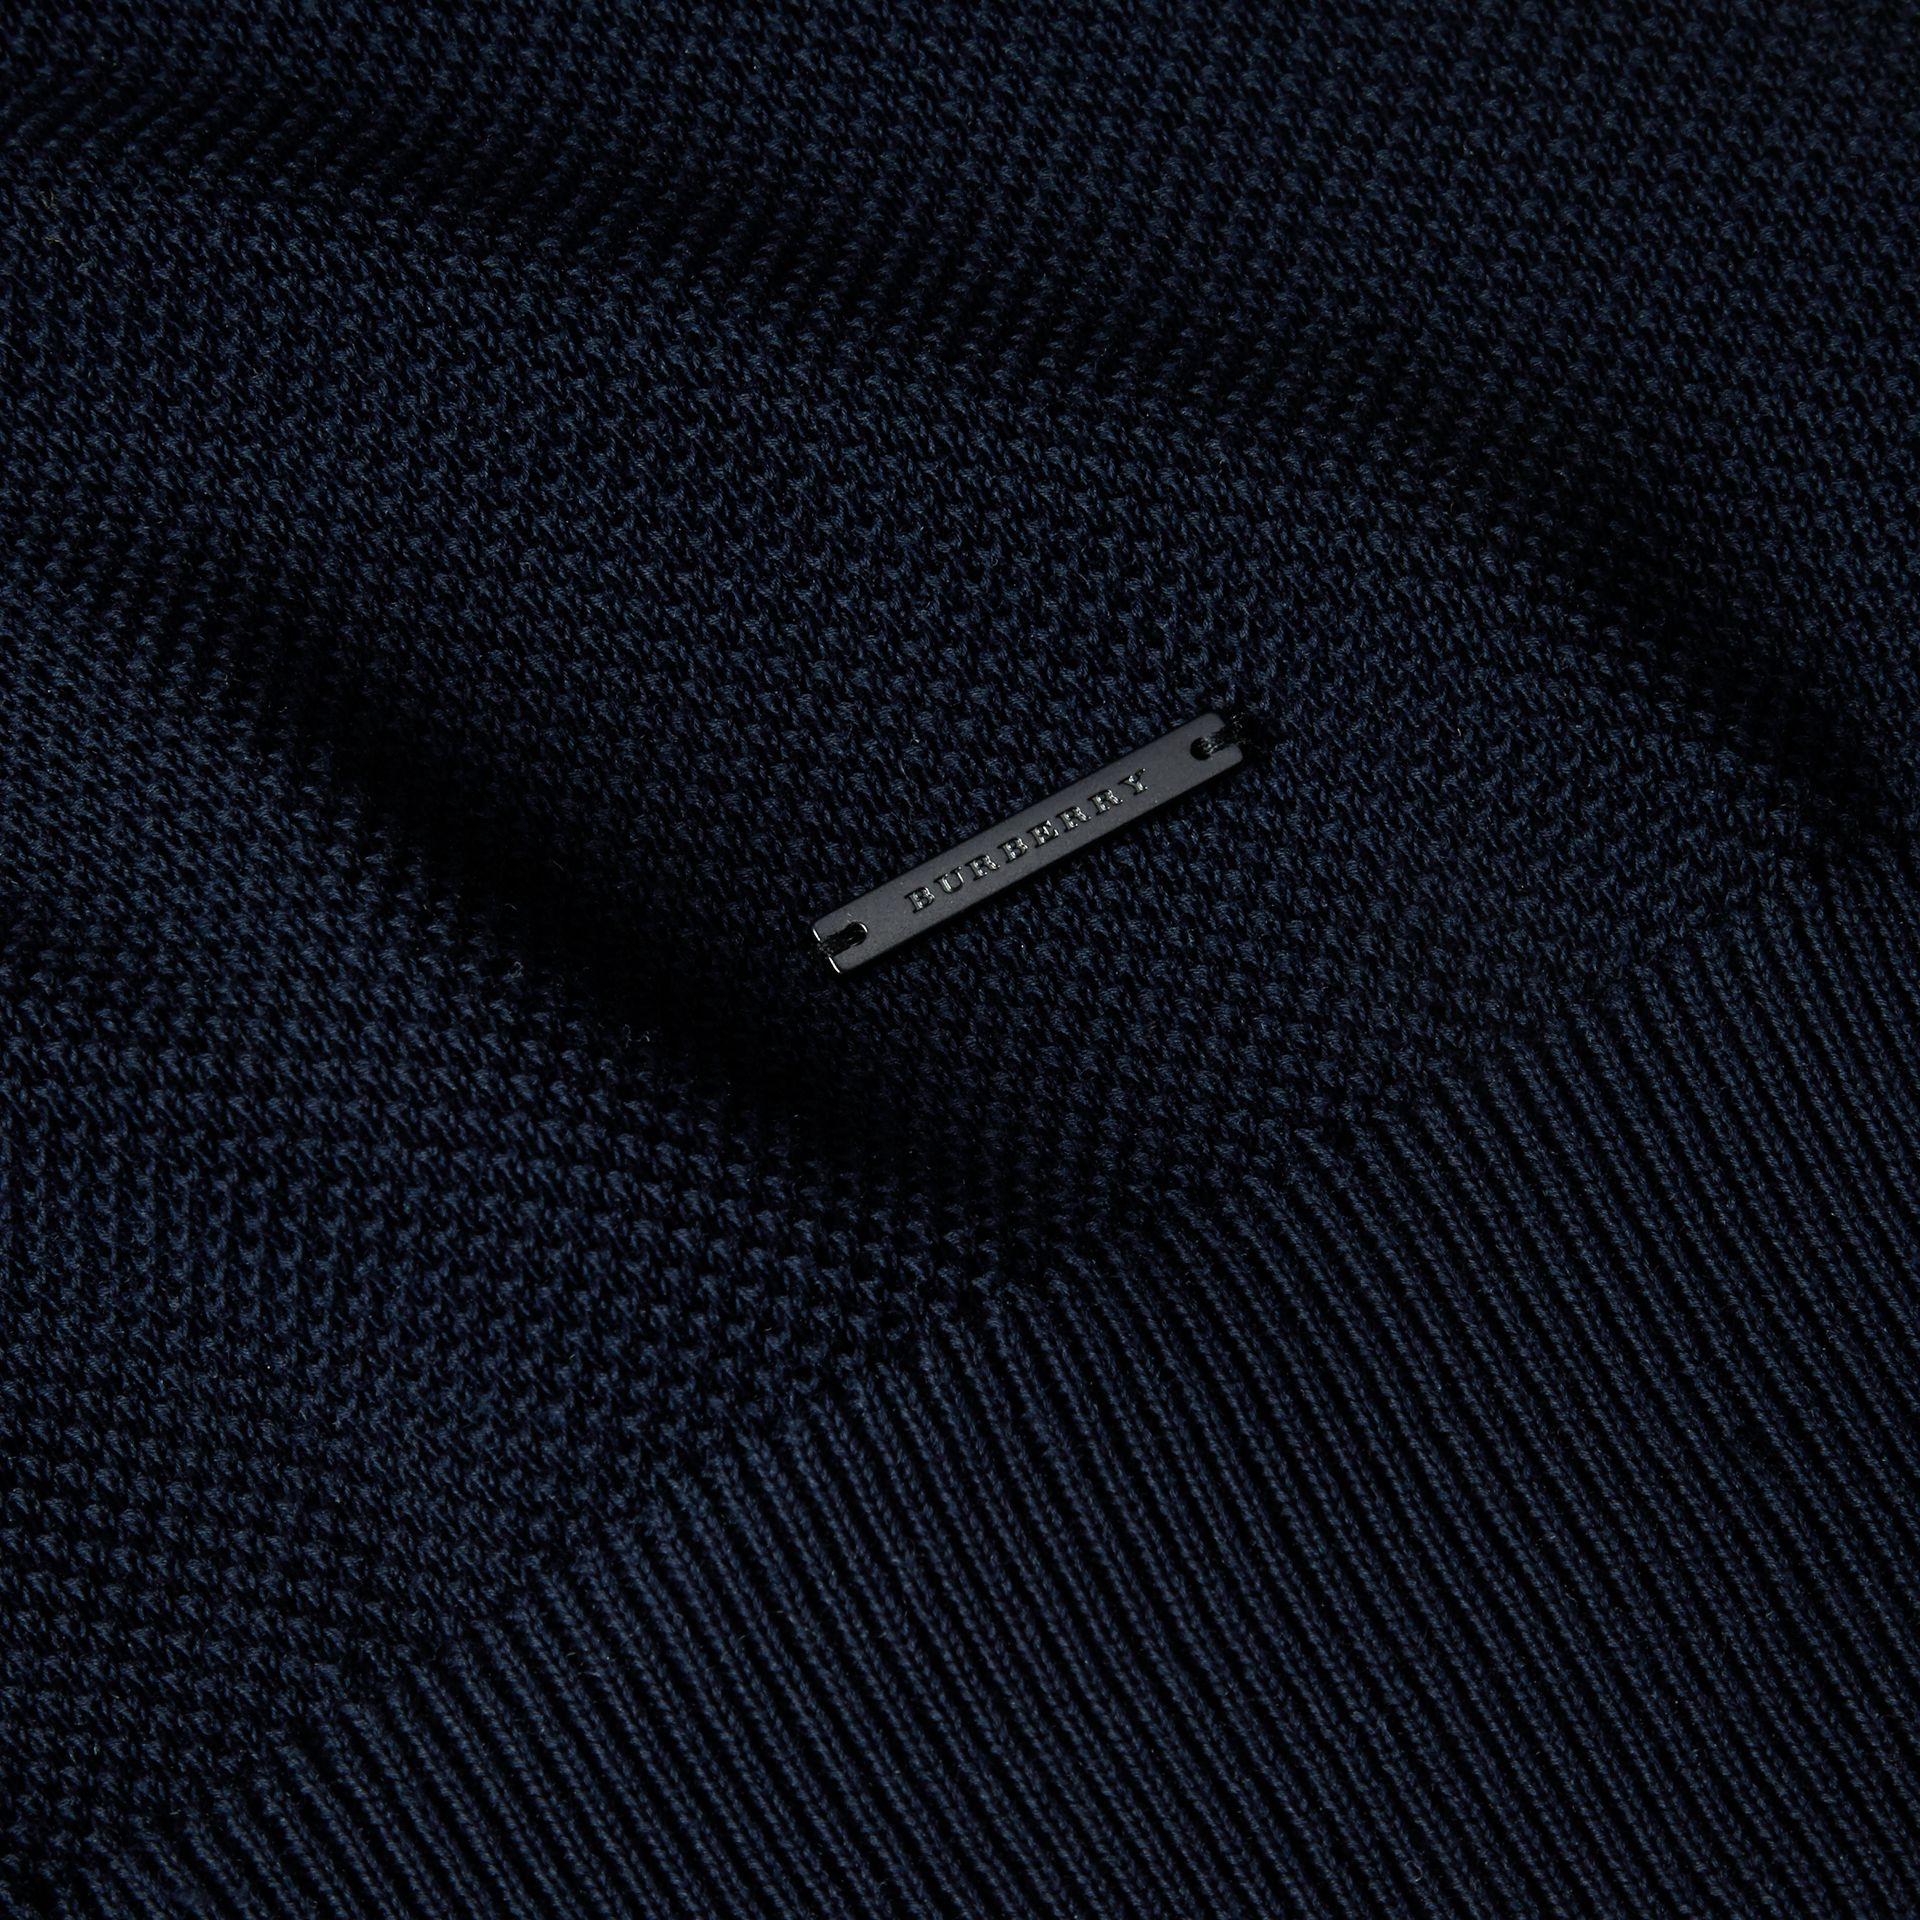 Crew Neck Textured Cotton Sweater in Navy - Men | Burberry - gallery image 2